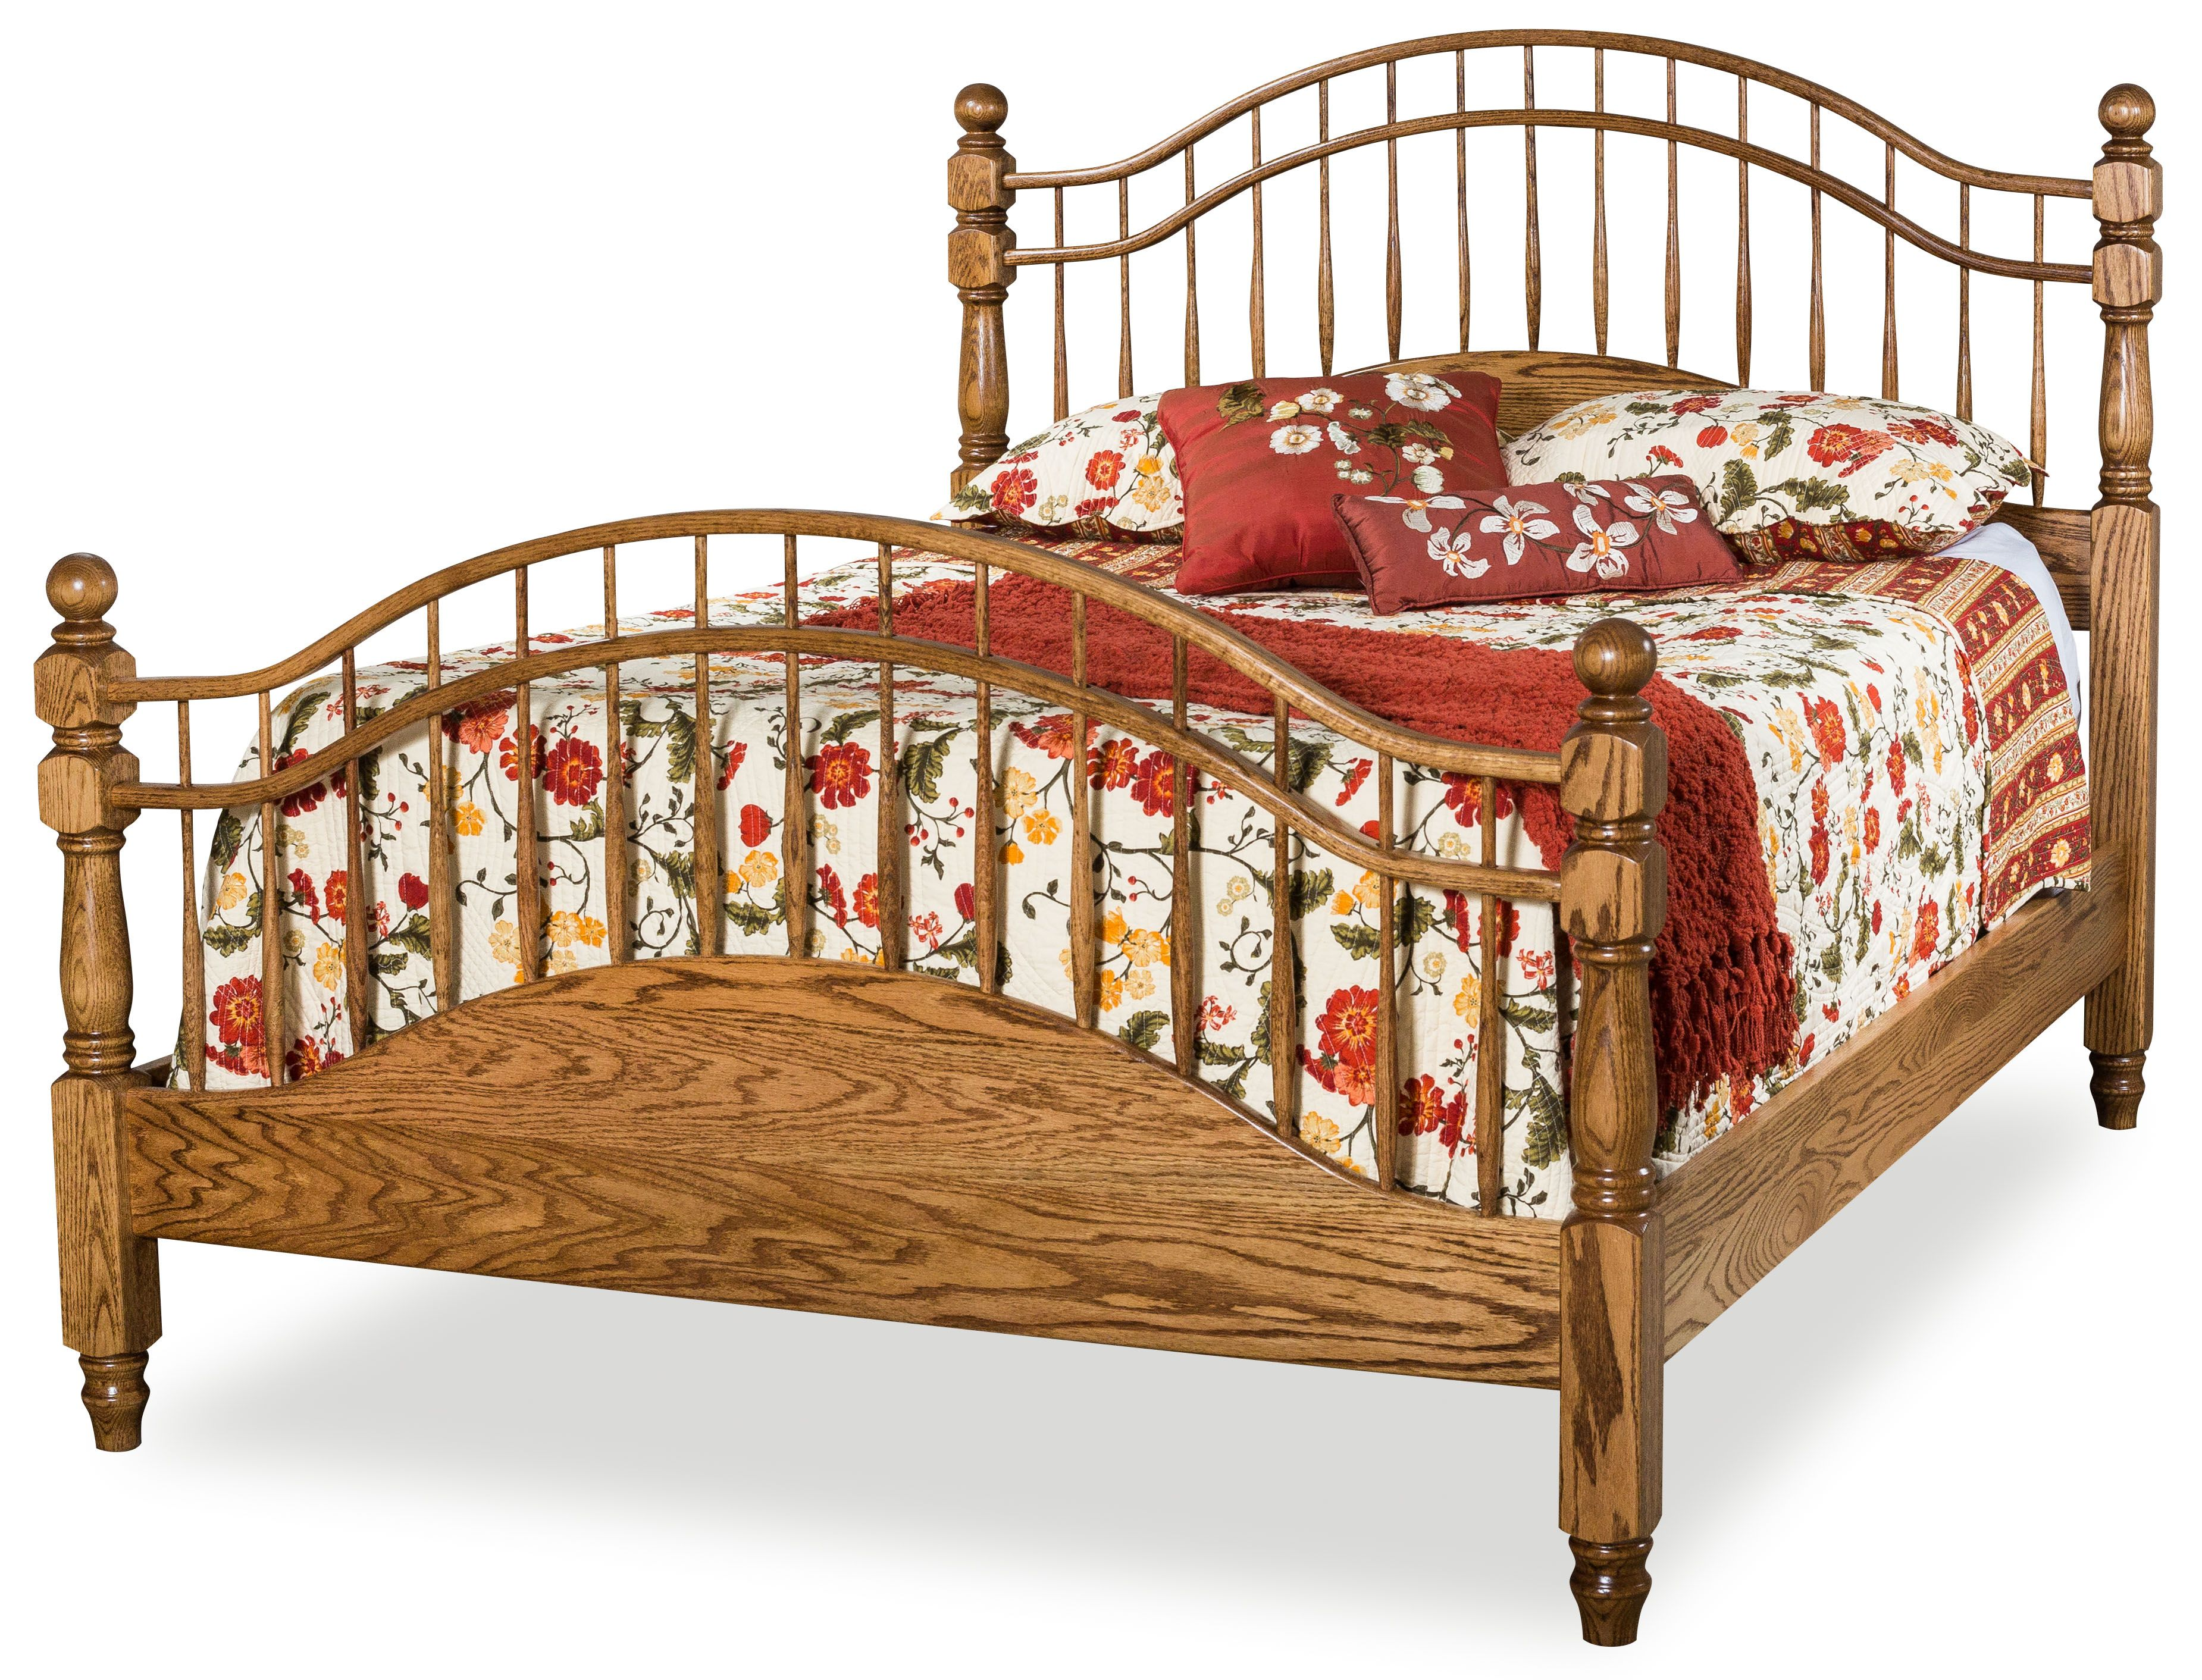 Double Bow Spindle Bed Bedroom Furniture Furniture Bedroom